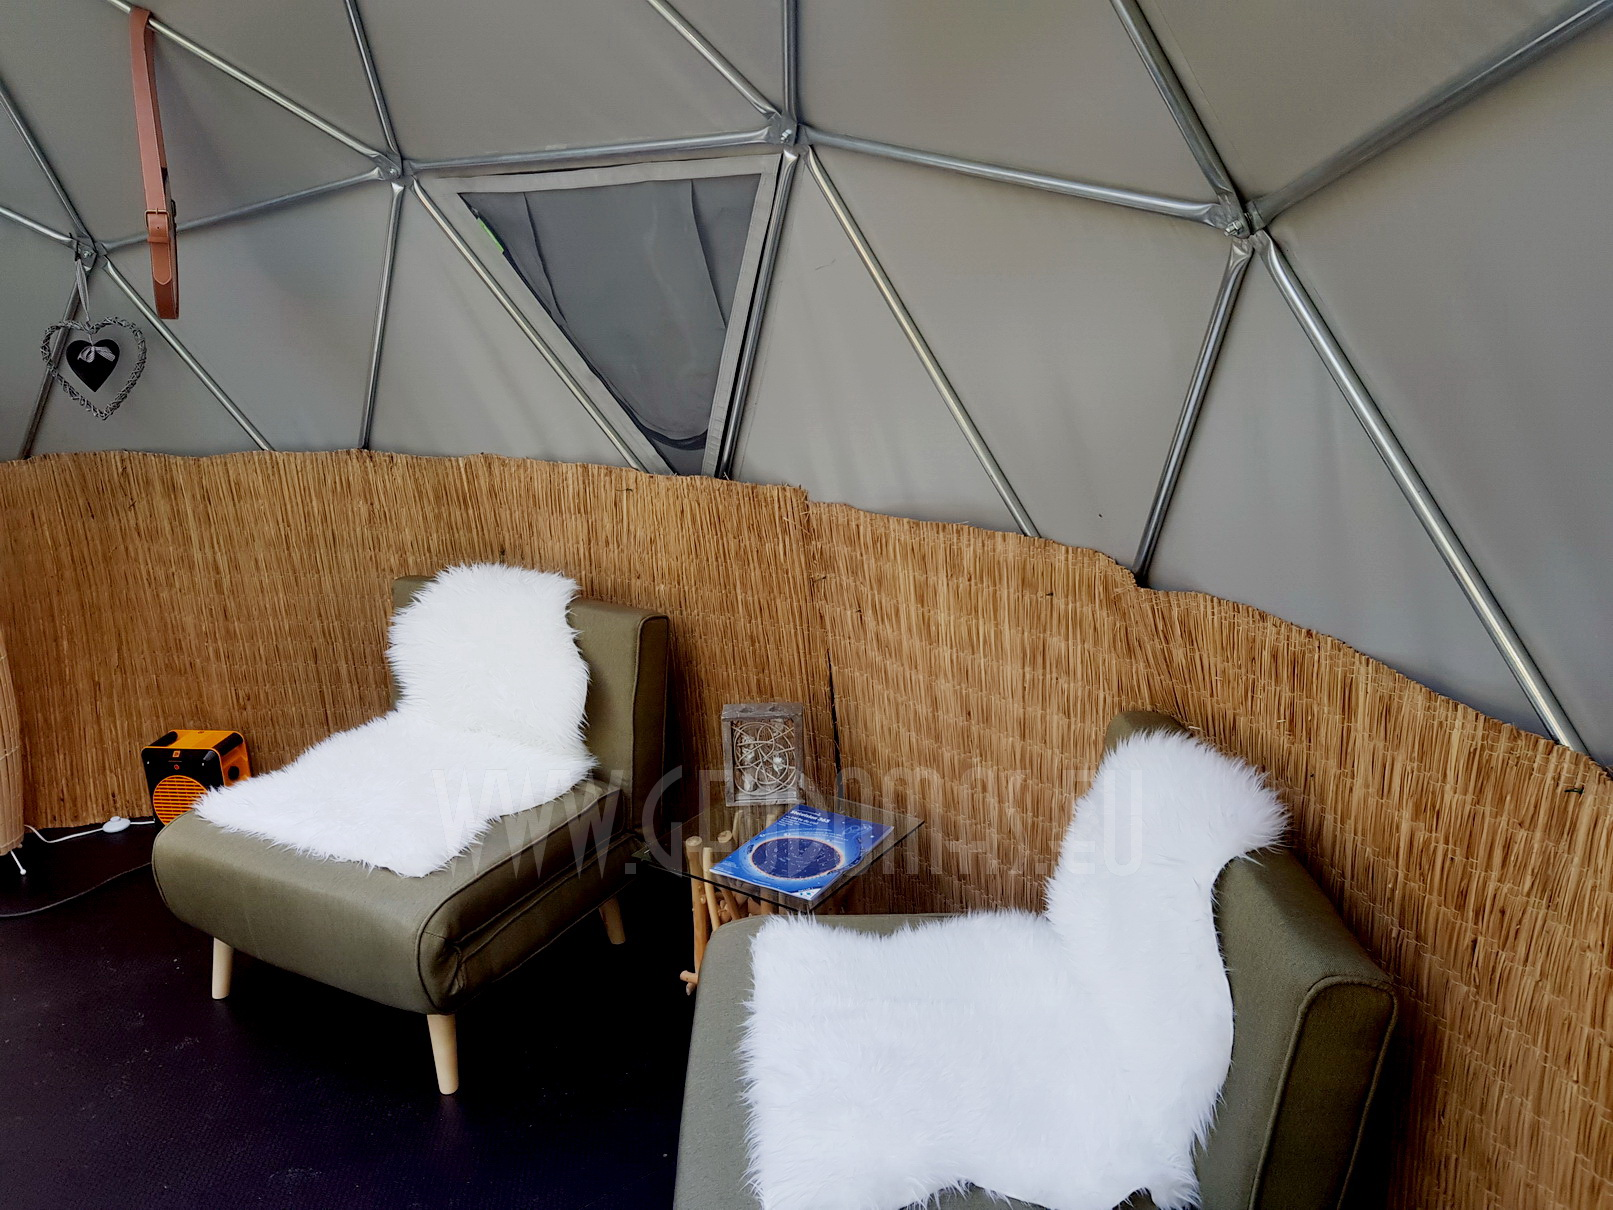 Maisons Bulles™ night in a transparent bubble | DOME Ø5m F3 20m2